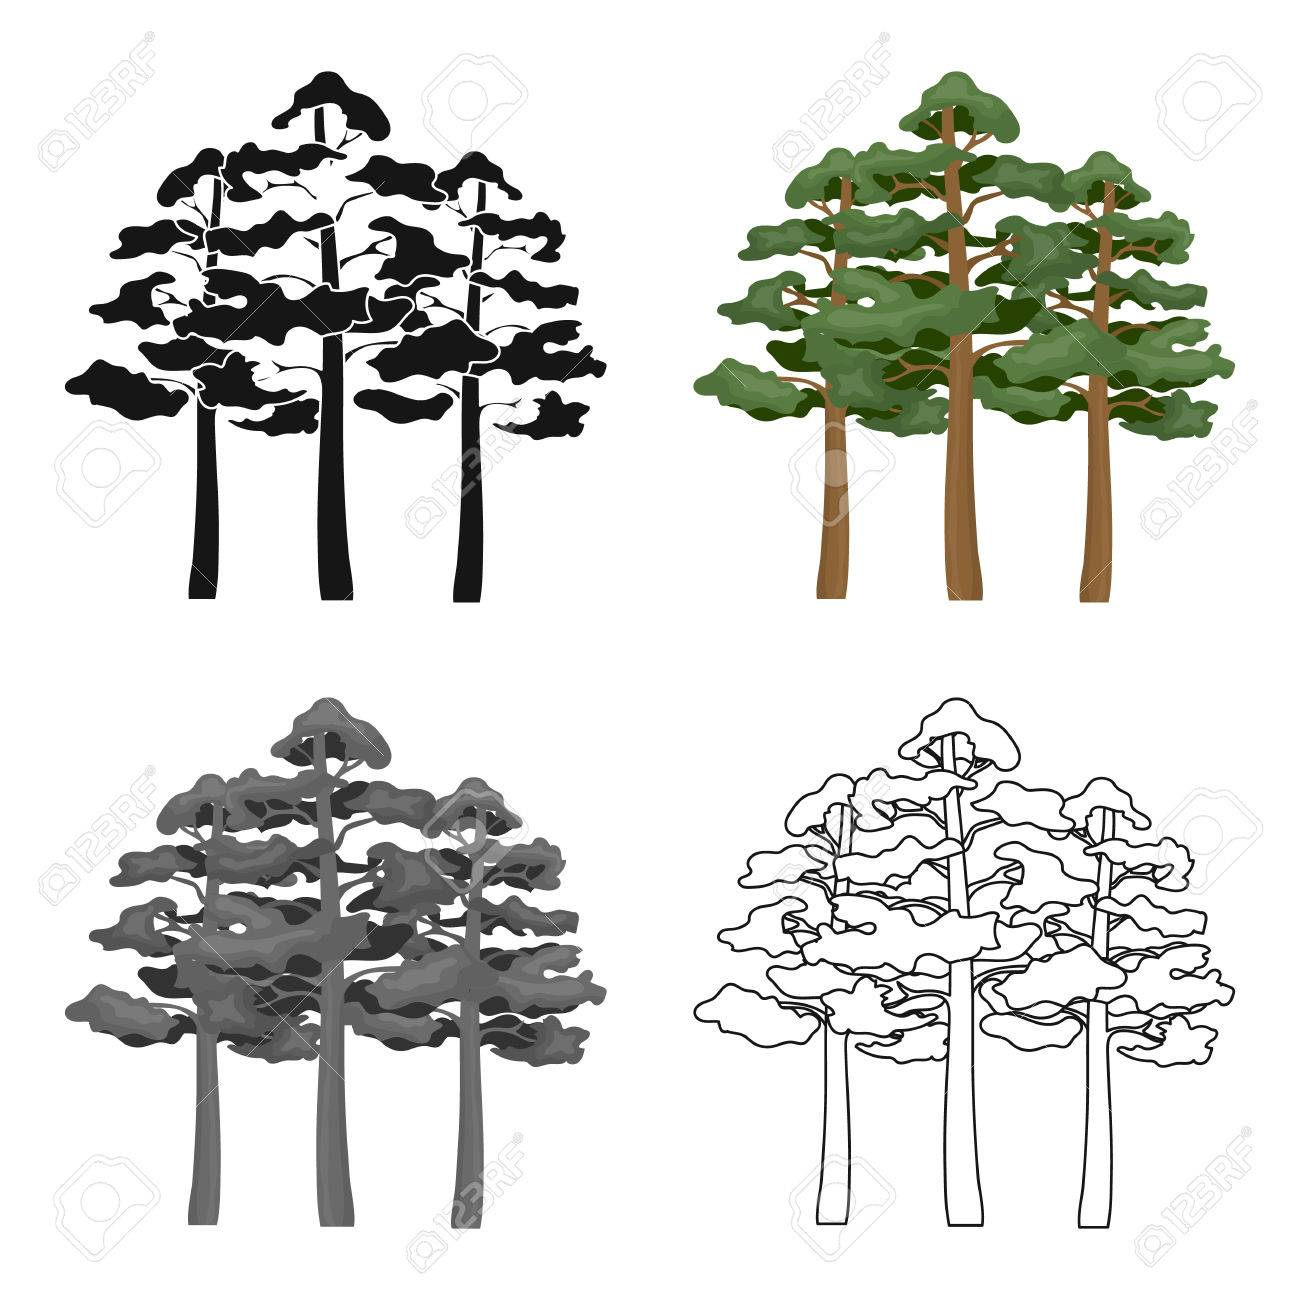 Pine vector icon in cartoon style for web - 77326367